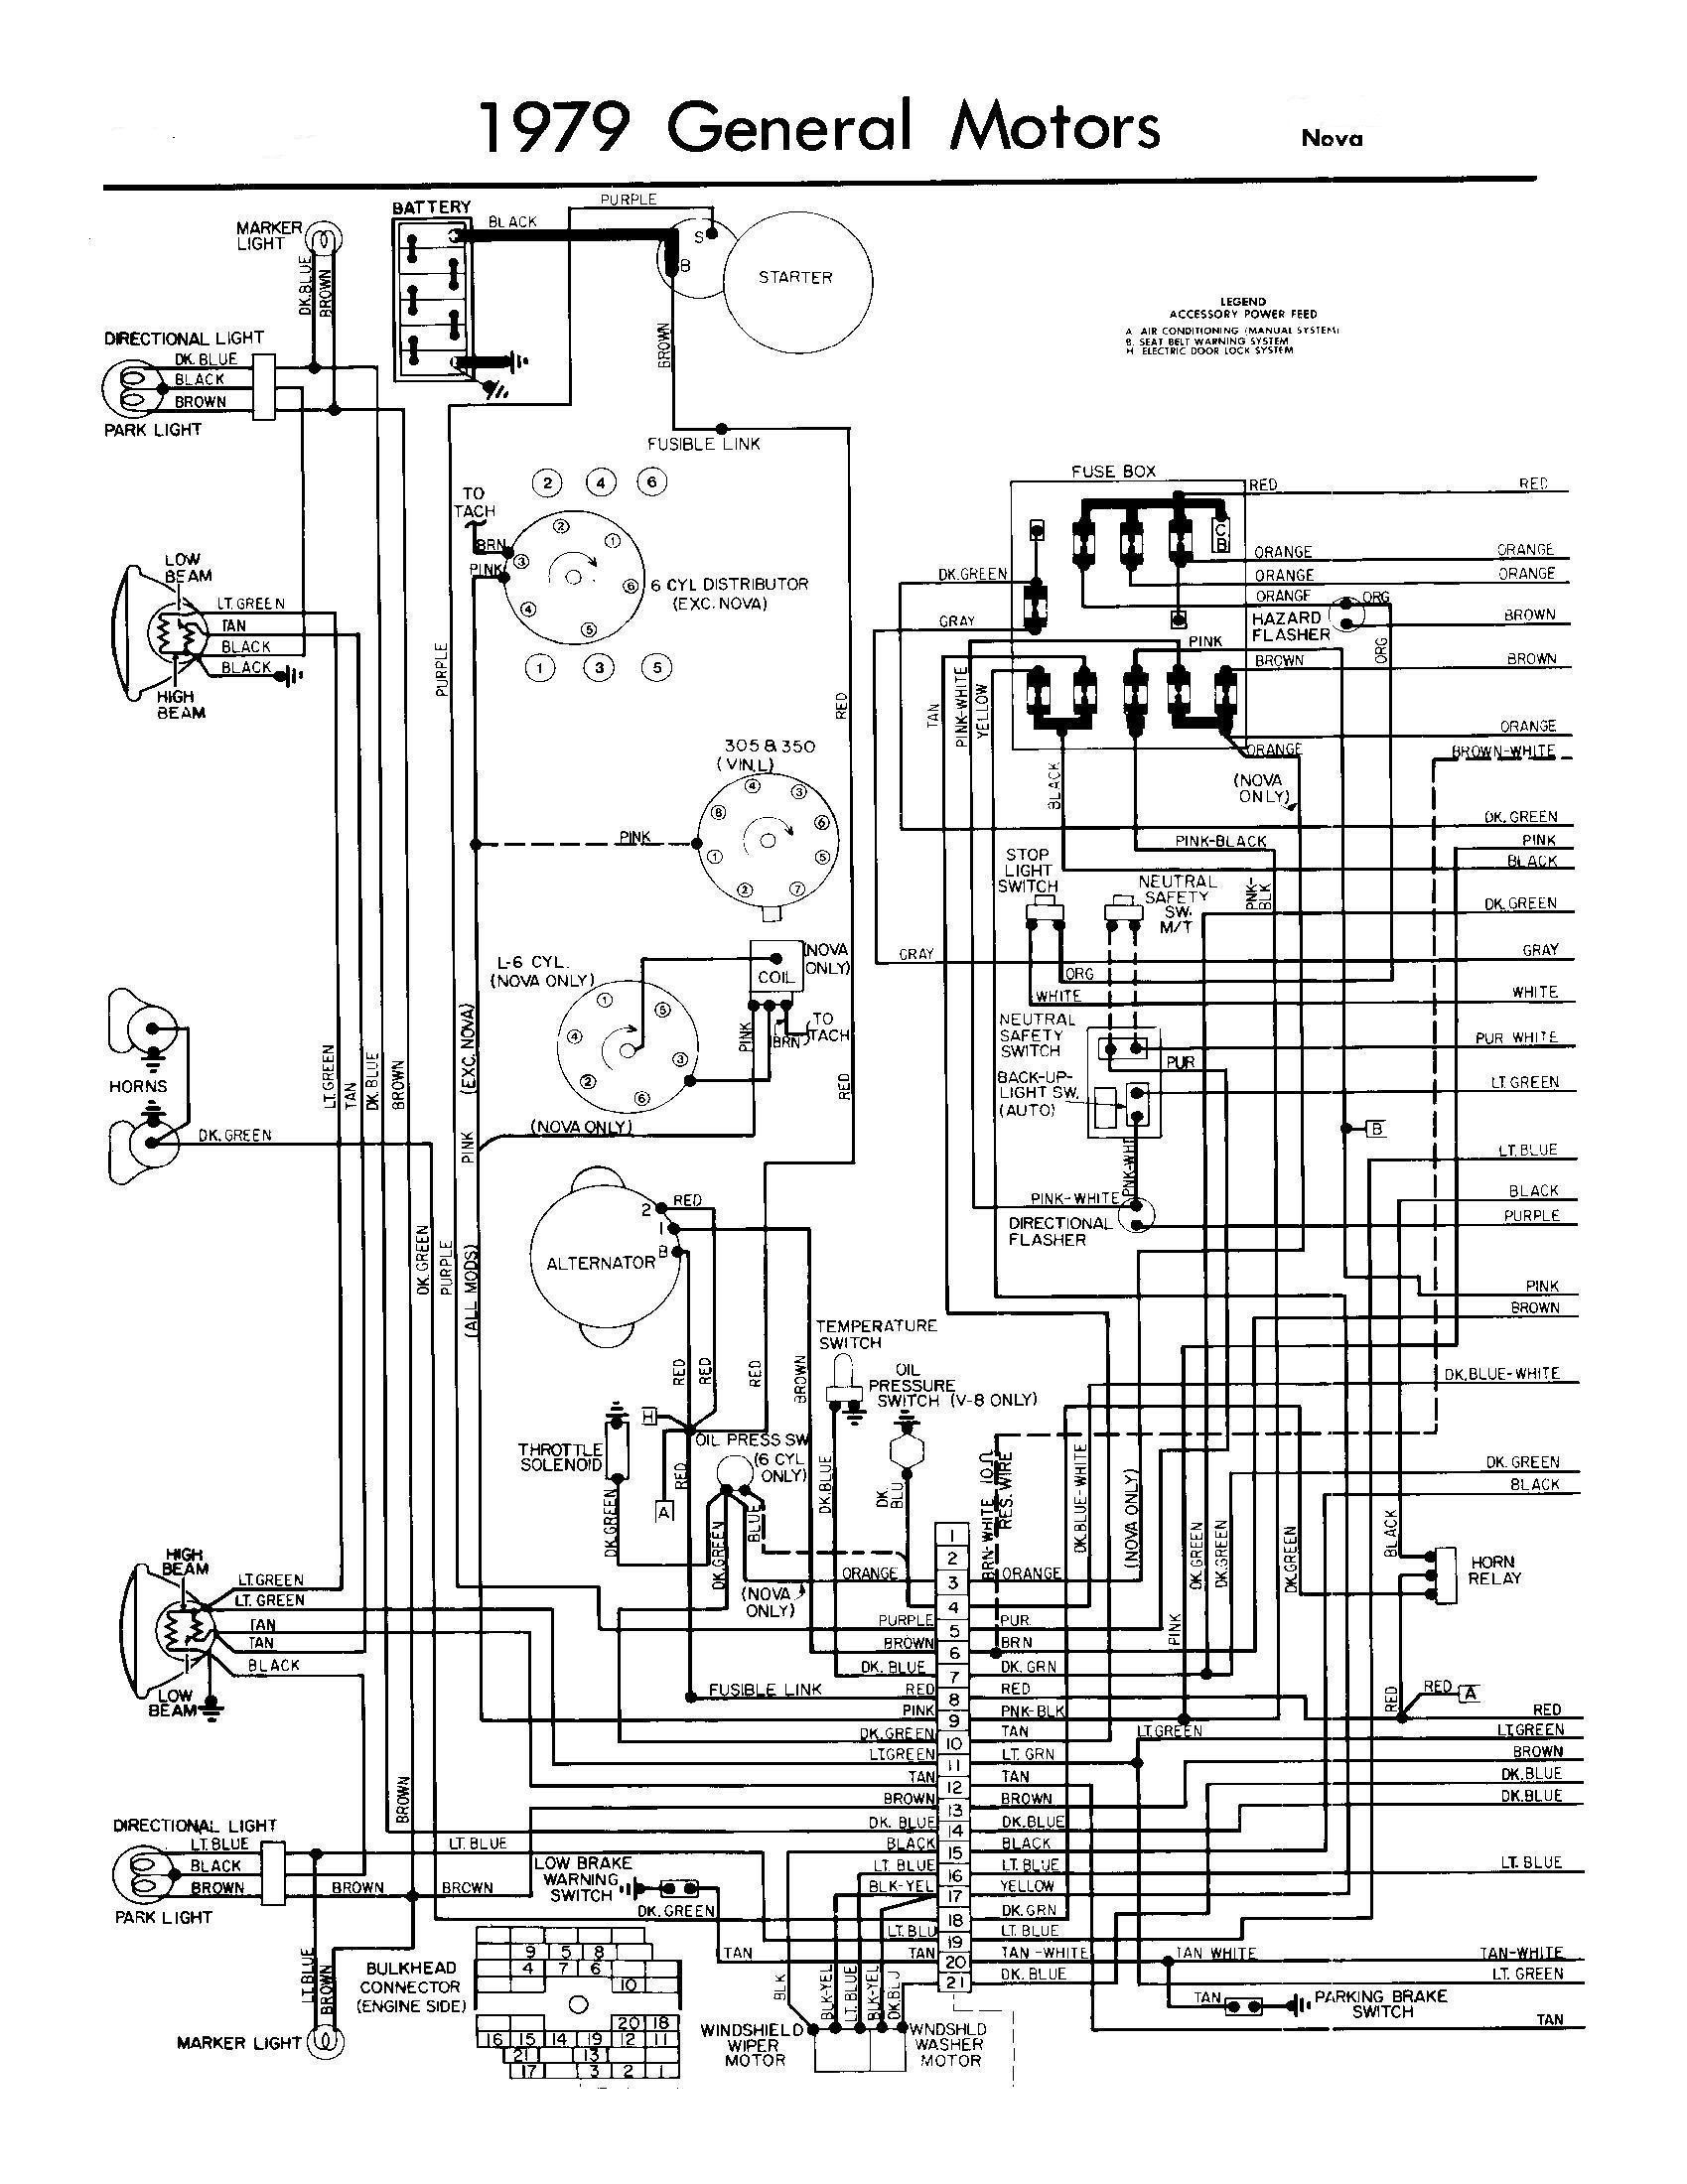 chevy k10 starter wiring electrical work wiring diagram u2022 rh wiringdiagramshop today Chevy Mini Starter Wiring 80 Chevy Starter Wiring Diagram